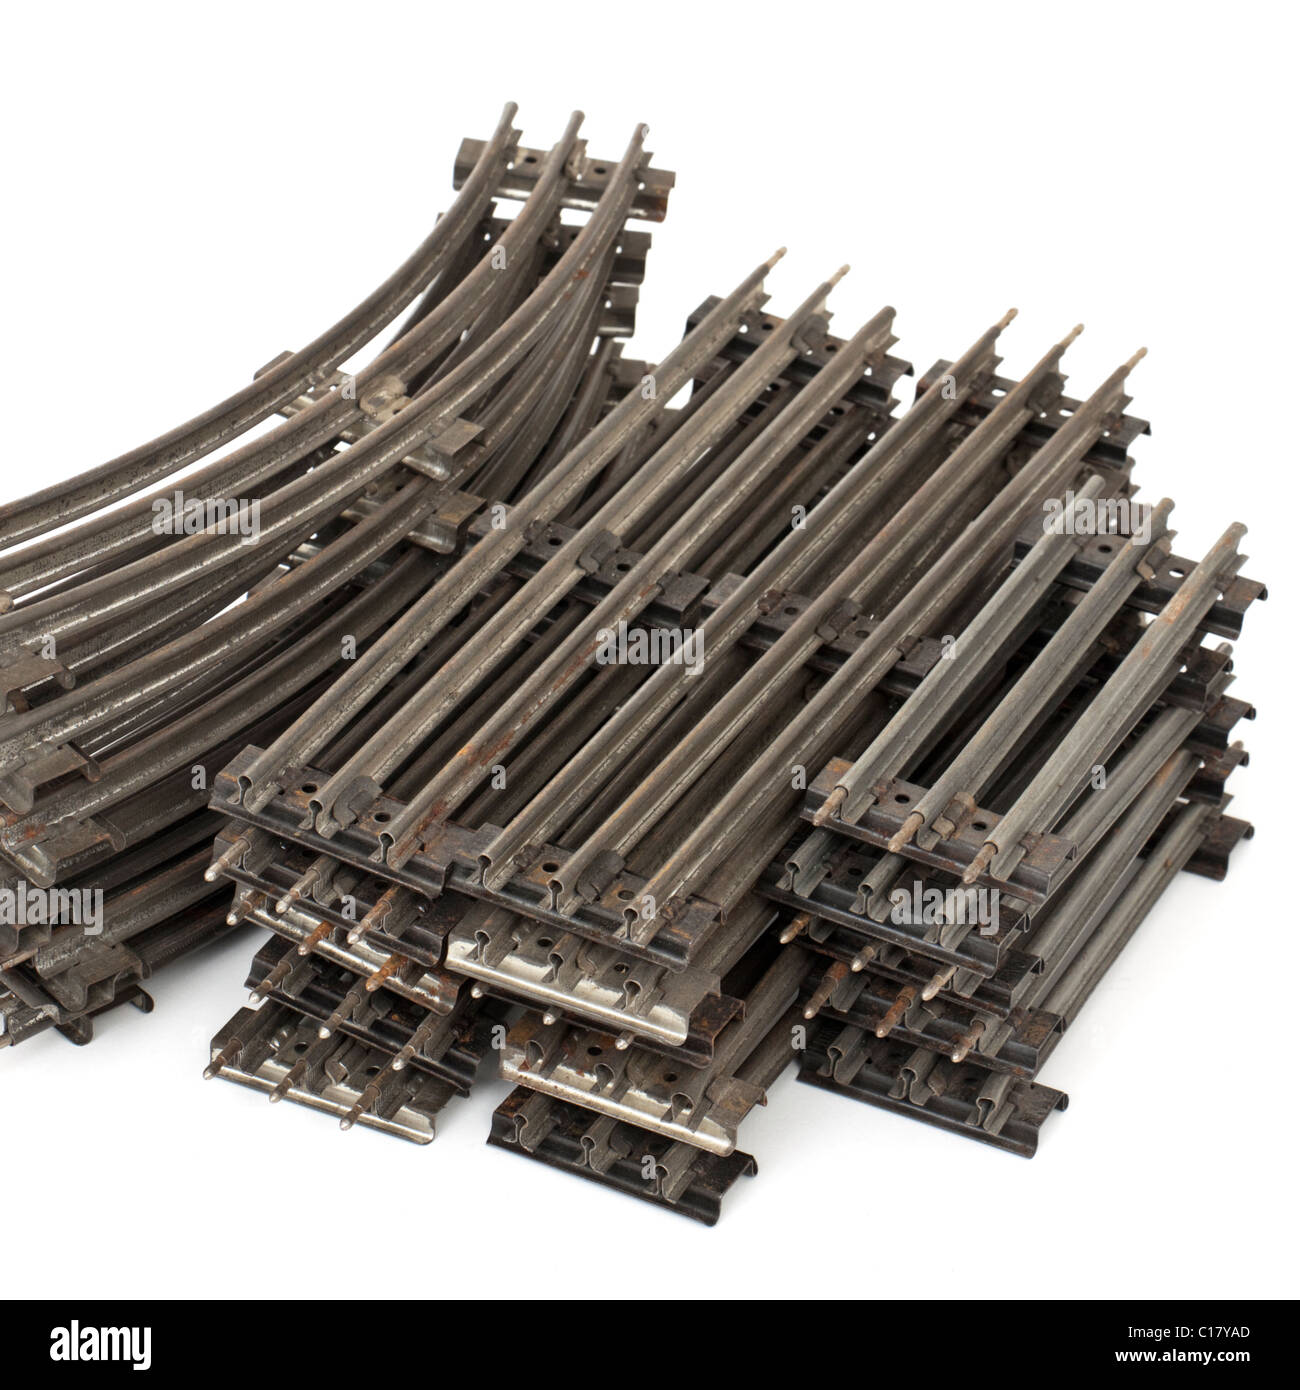 Collection of 1930's model railway track (O-gauge, 3-rail) - Stock Image